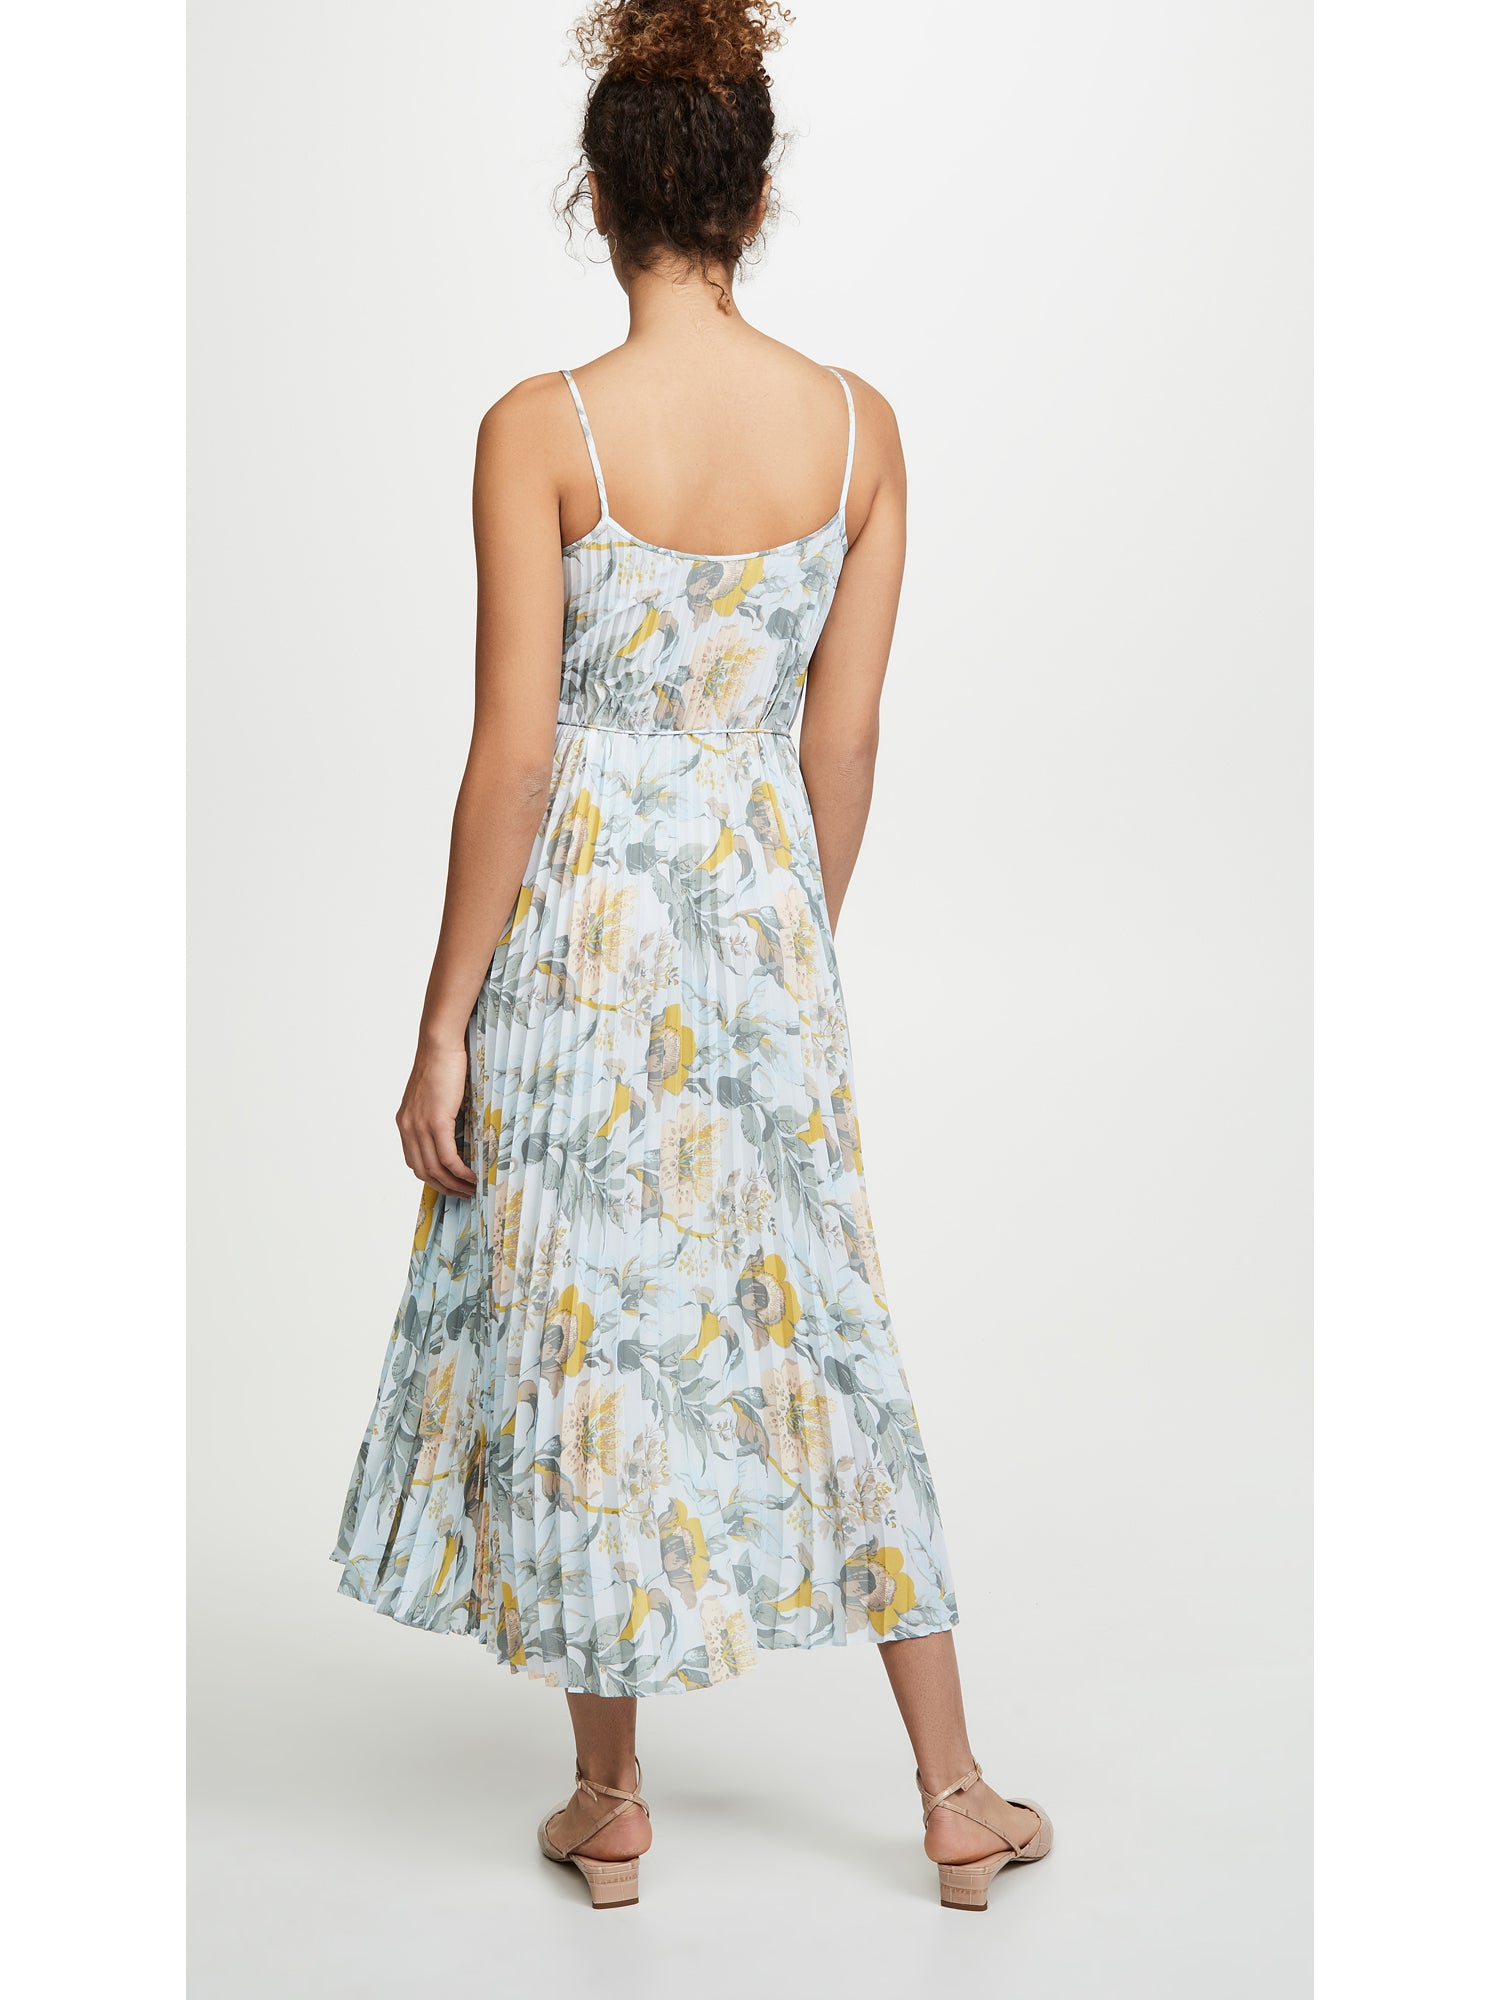 Vince Marine Garden Pleated Cami Maxi Dress - Surf Mist Blue | TILDEN